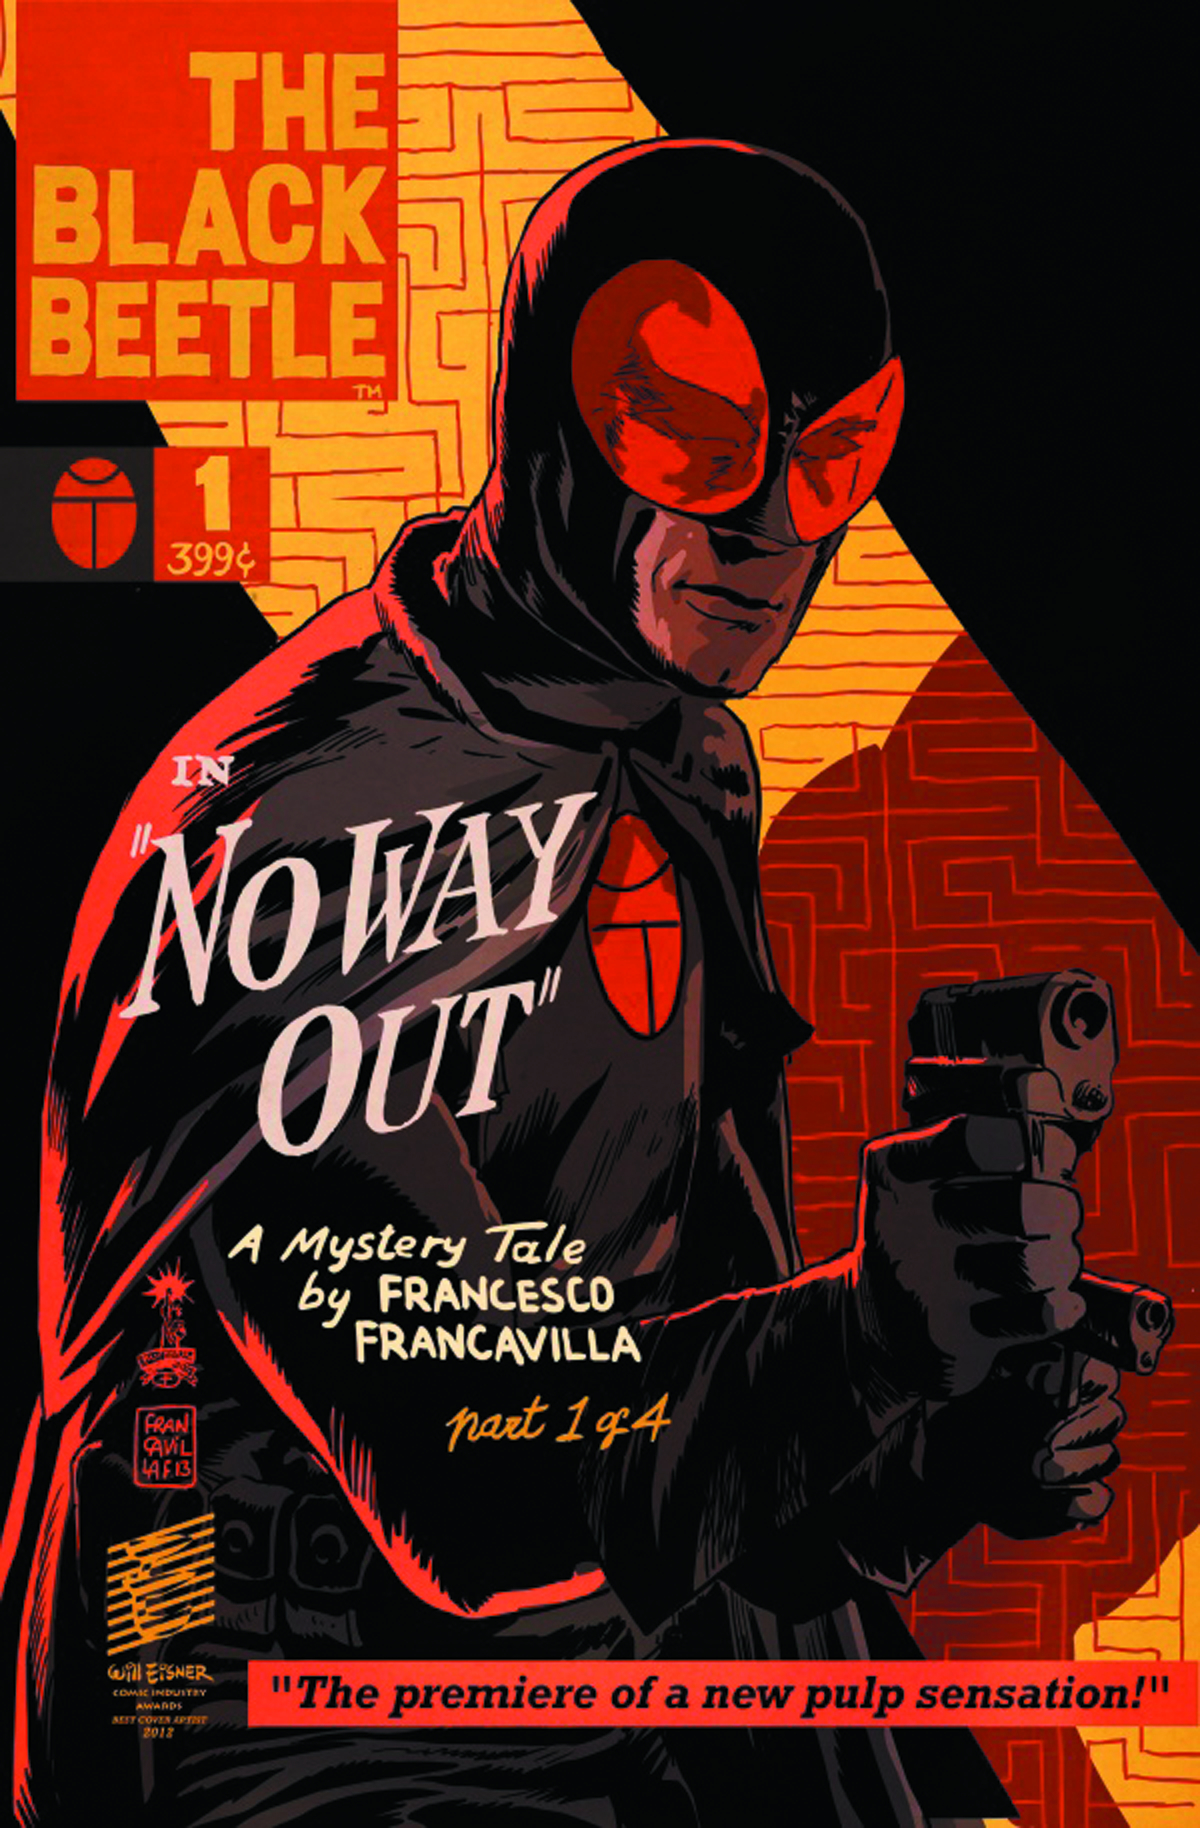 BLACK BEETLE #1 (OF 4) NO WAY OUT (2ND PTG)